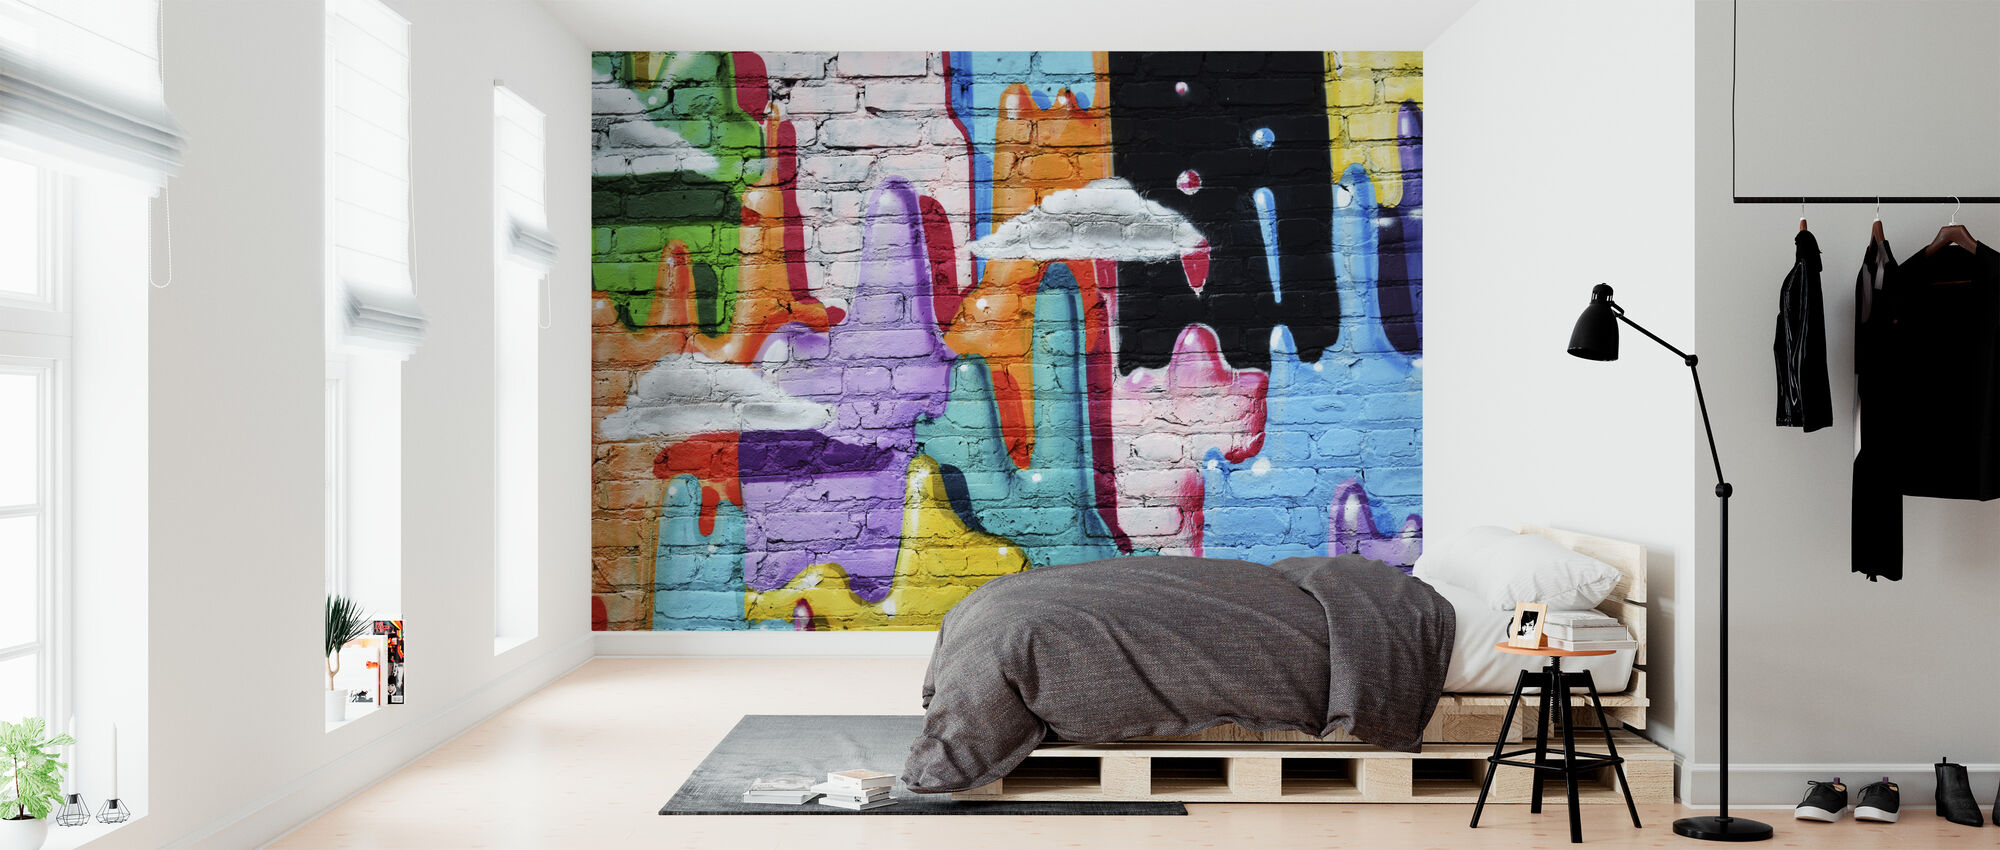 Colorful Abstract Graffiti - Wallpaper - Bedroom